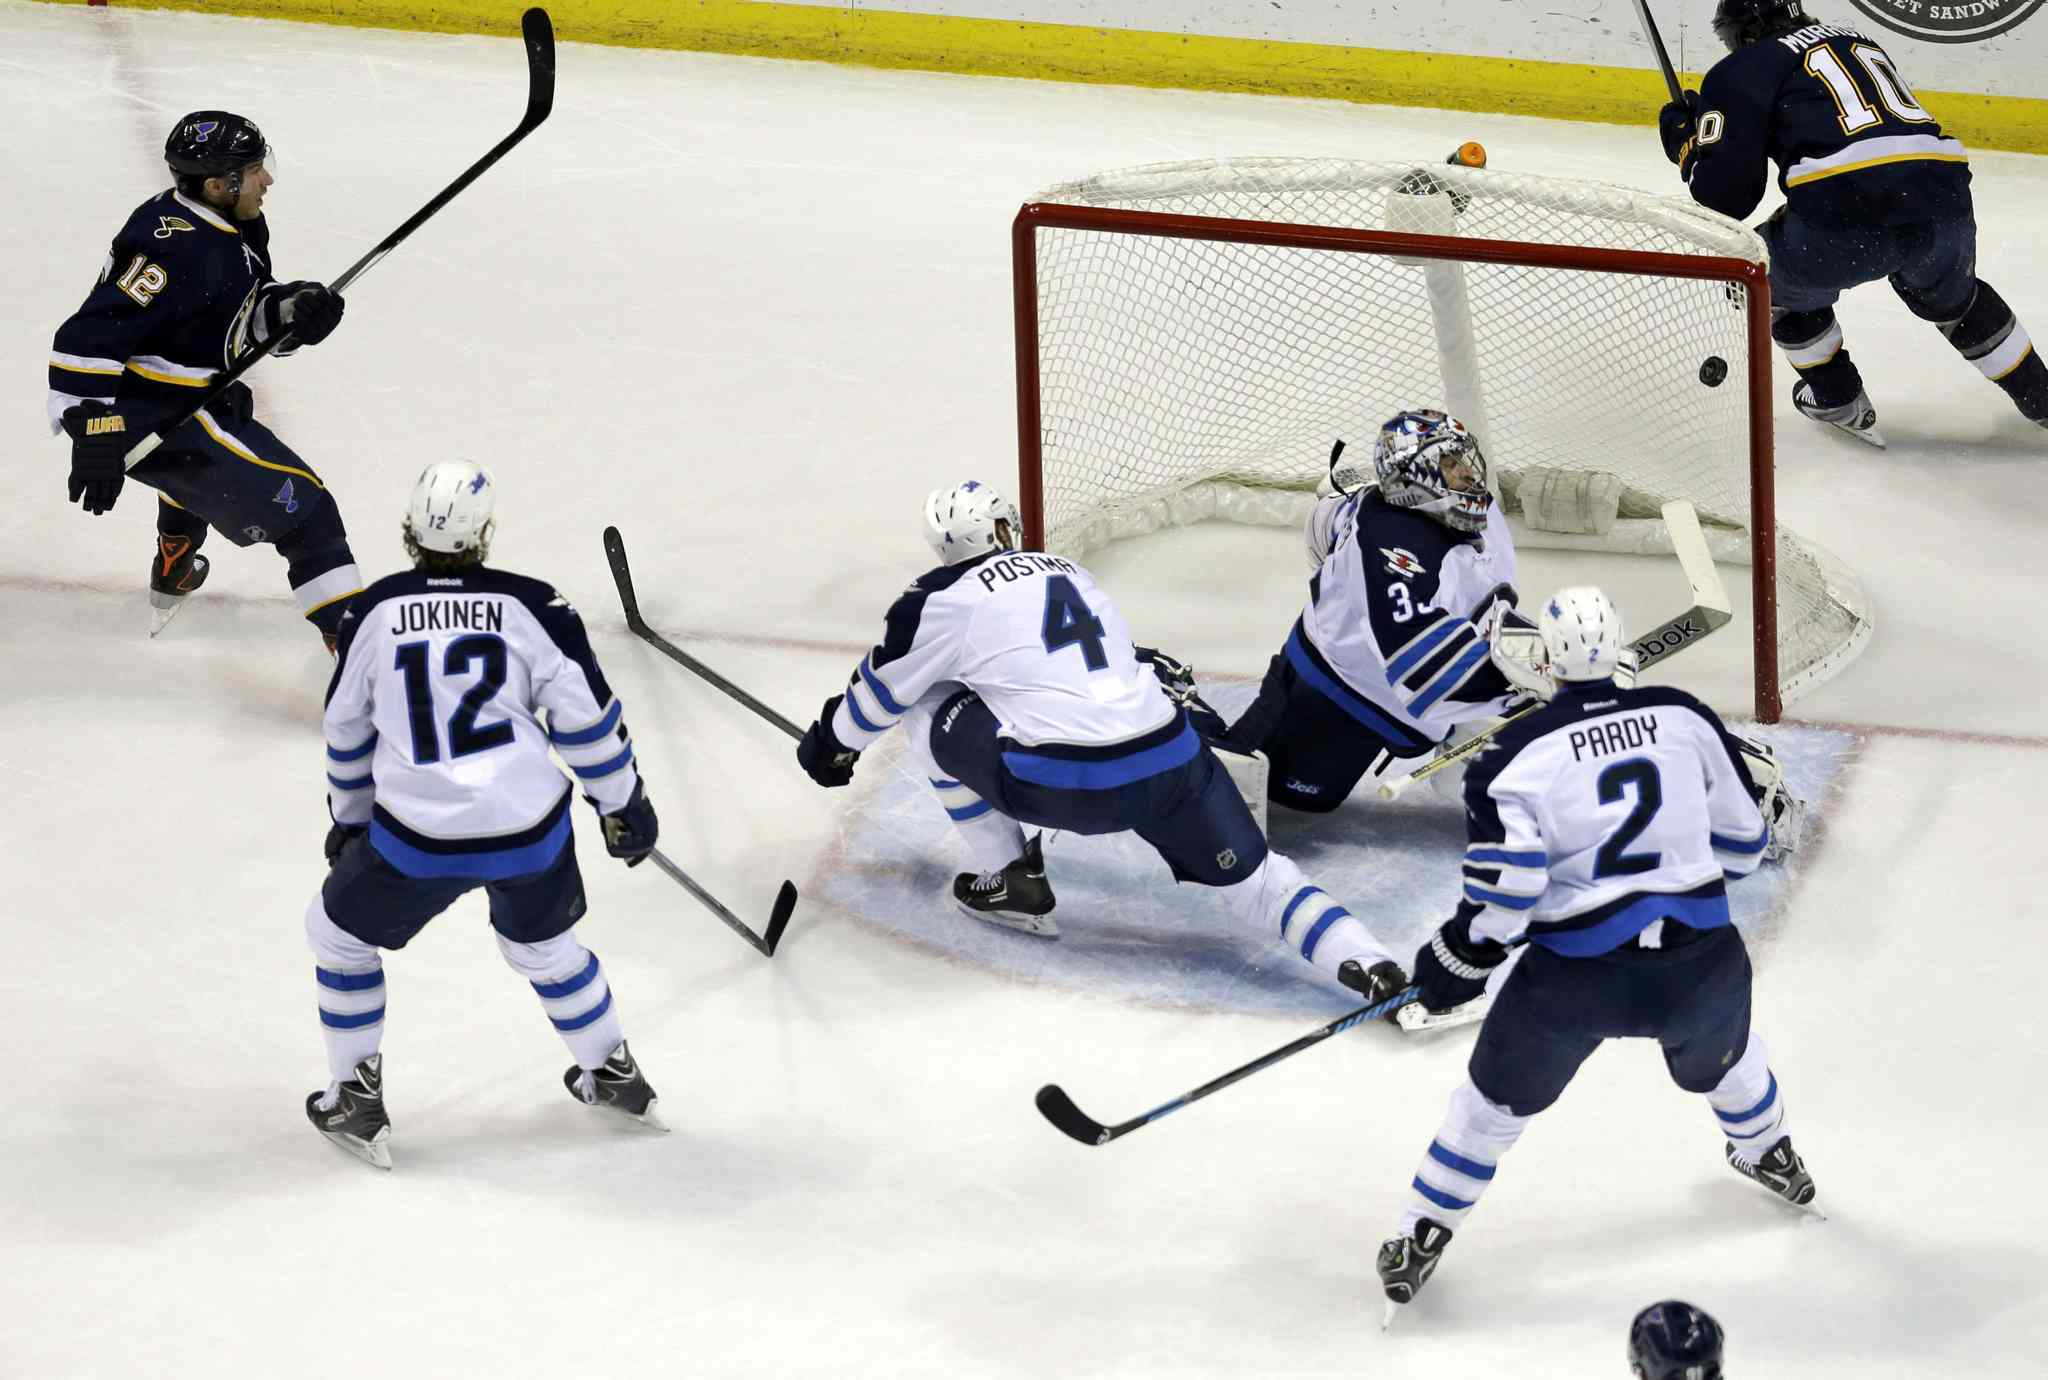 St. Louis Blues' Derek Roy, left, scores a first-period goal past Winnipeg Jets' goalie Al Montoya as Olli Jokinen (12), Paul Postma (4) and Adam Pardy (2) look on.